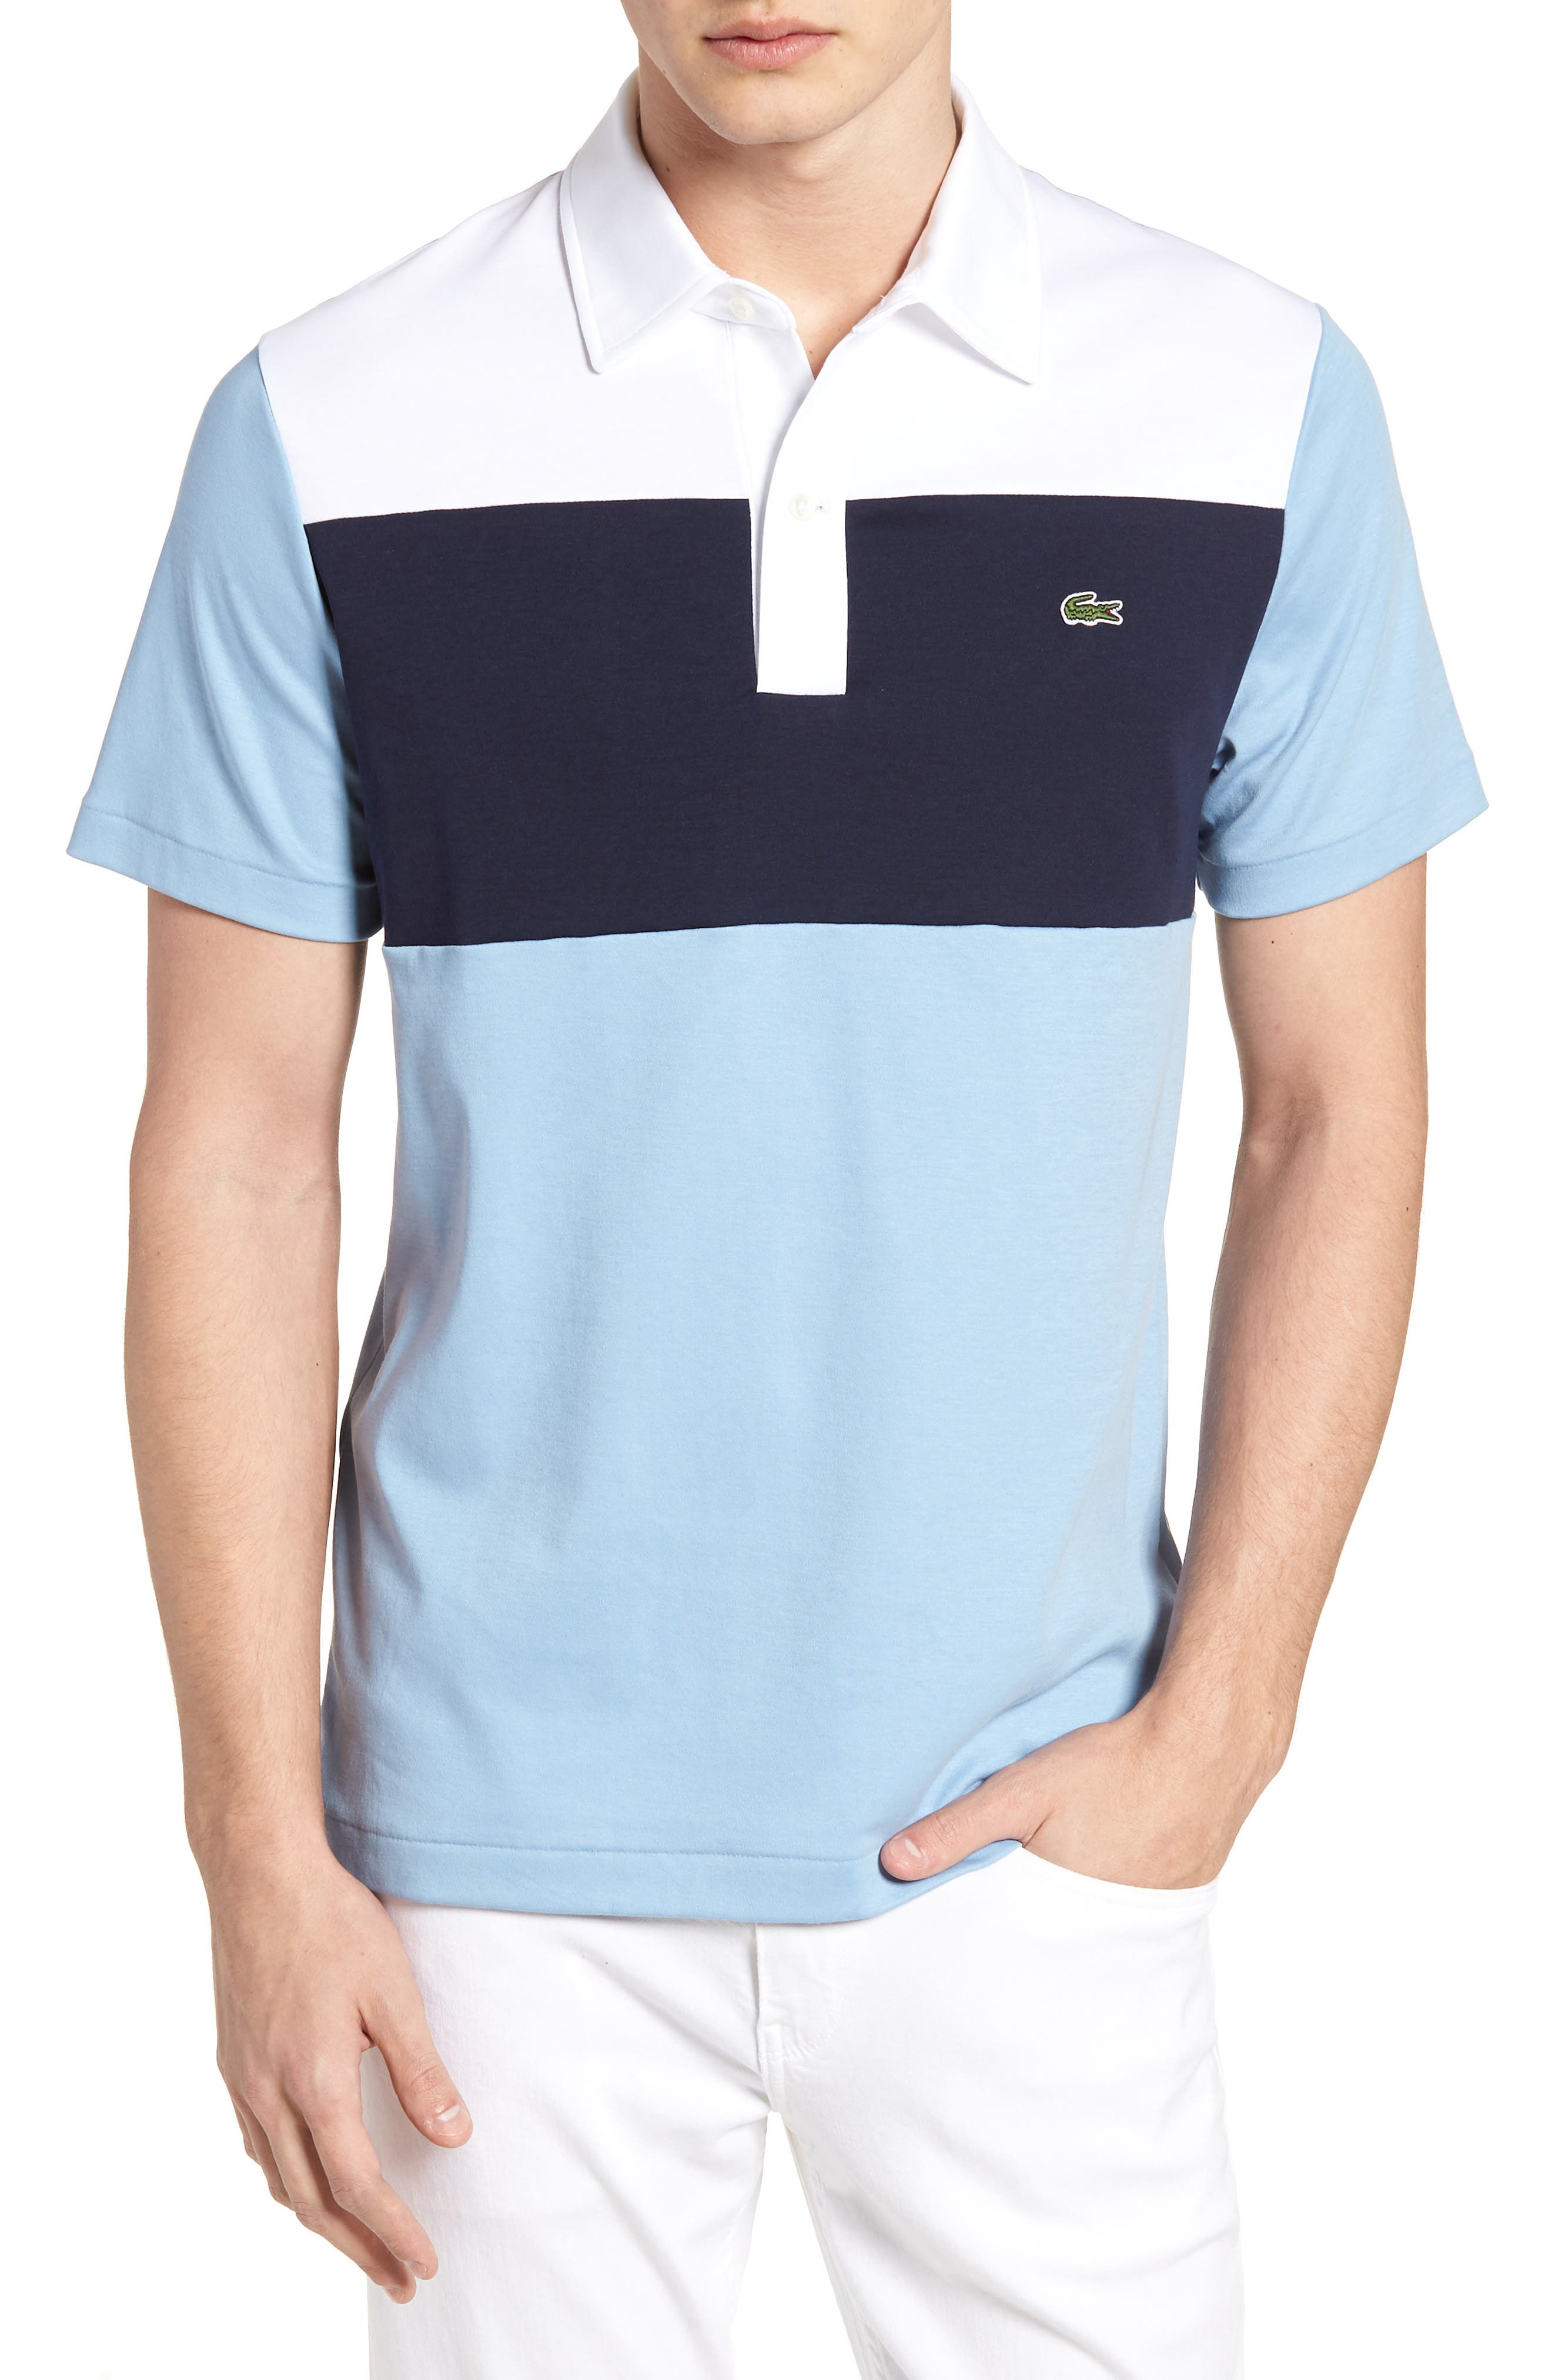 85th Anniversary Polo,                             Main thumbnail 1, color,                             DRAGONFLY/ NAVY BLUE-WHITE